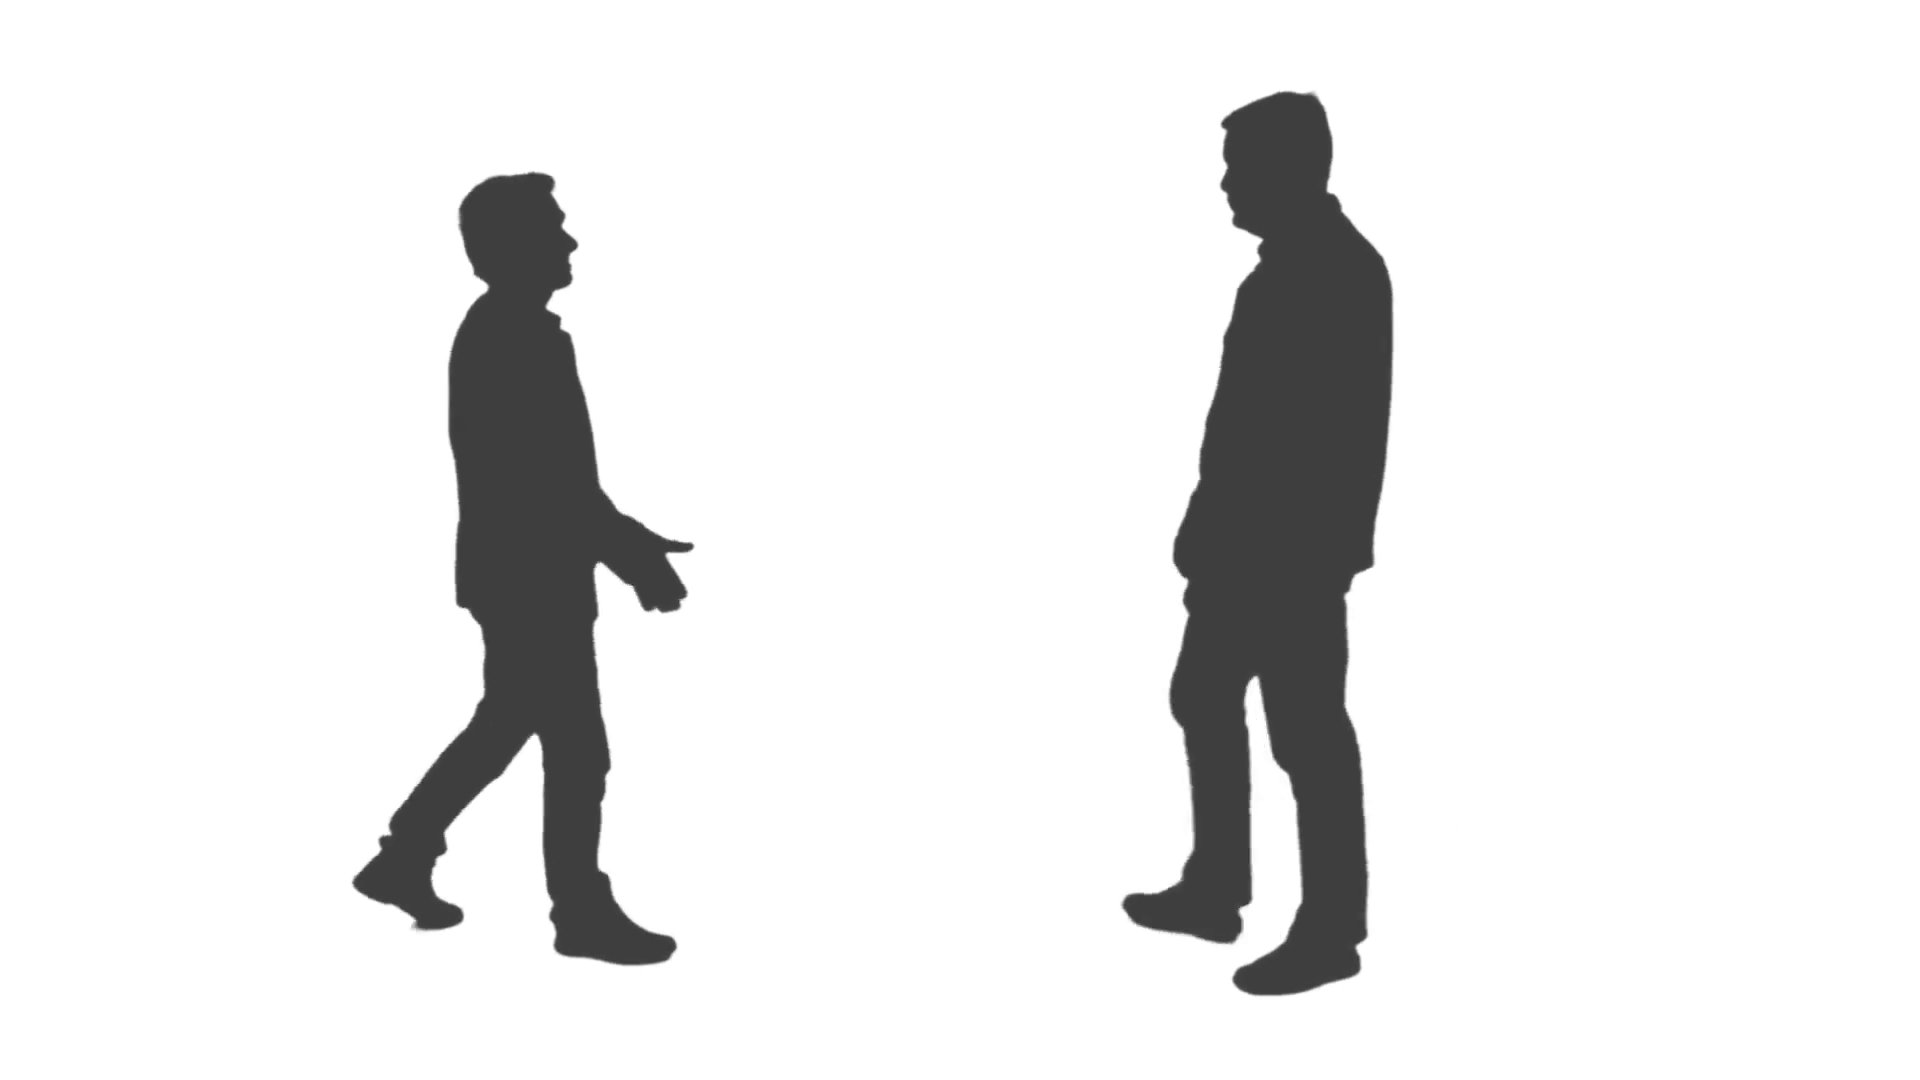 1920x1080 Silhouette Of Two Men Meeting And Handshake. Full Hd Footage